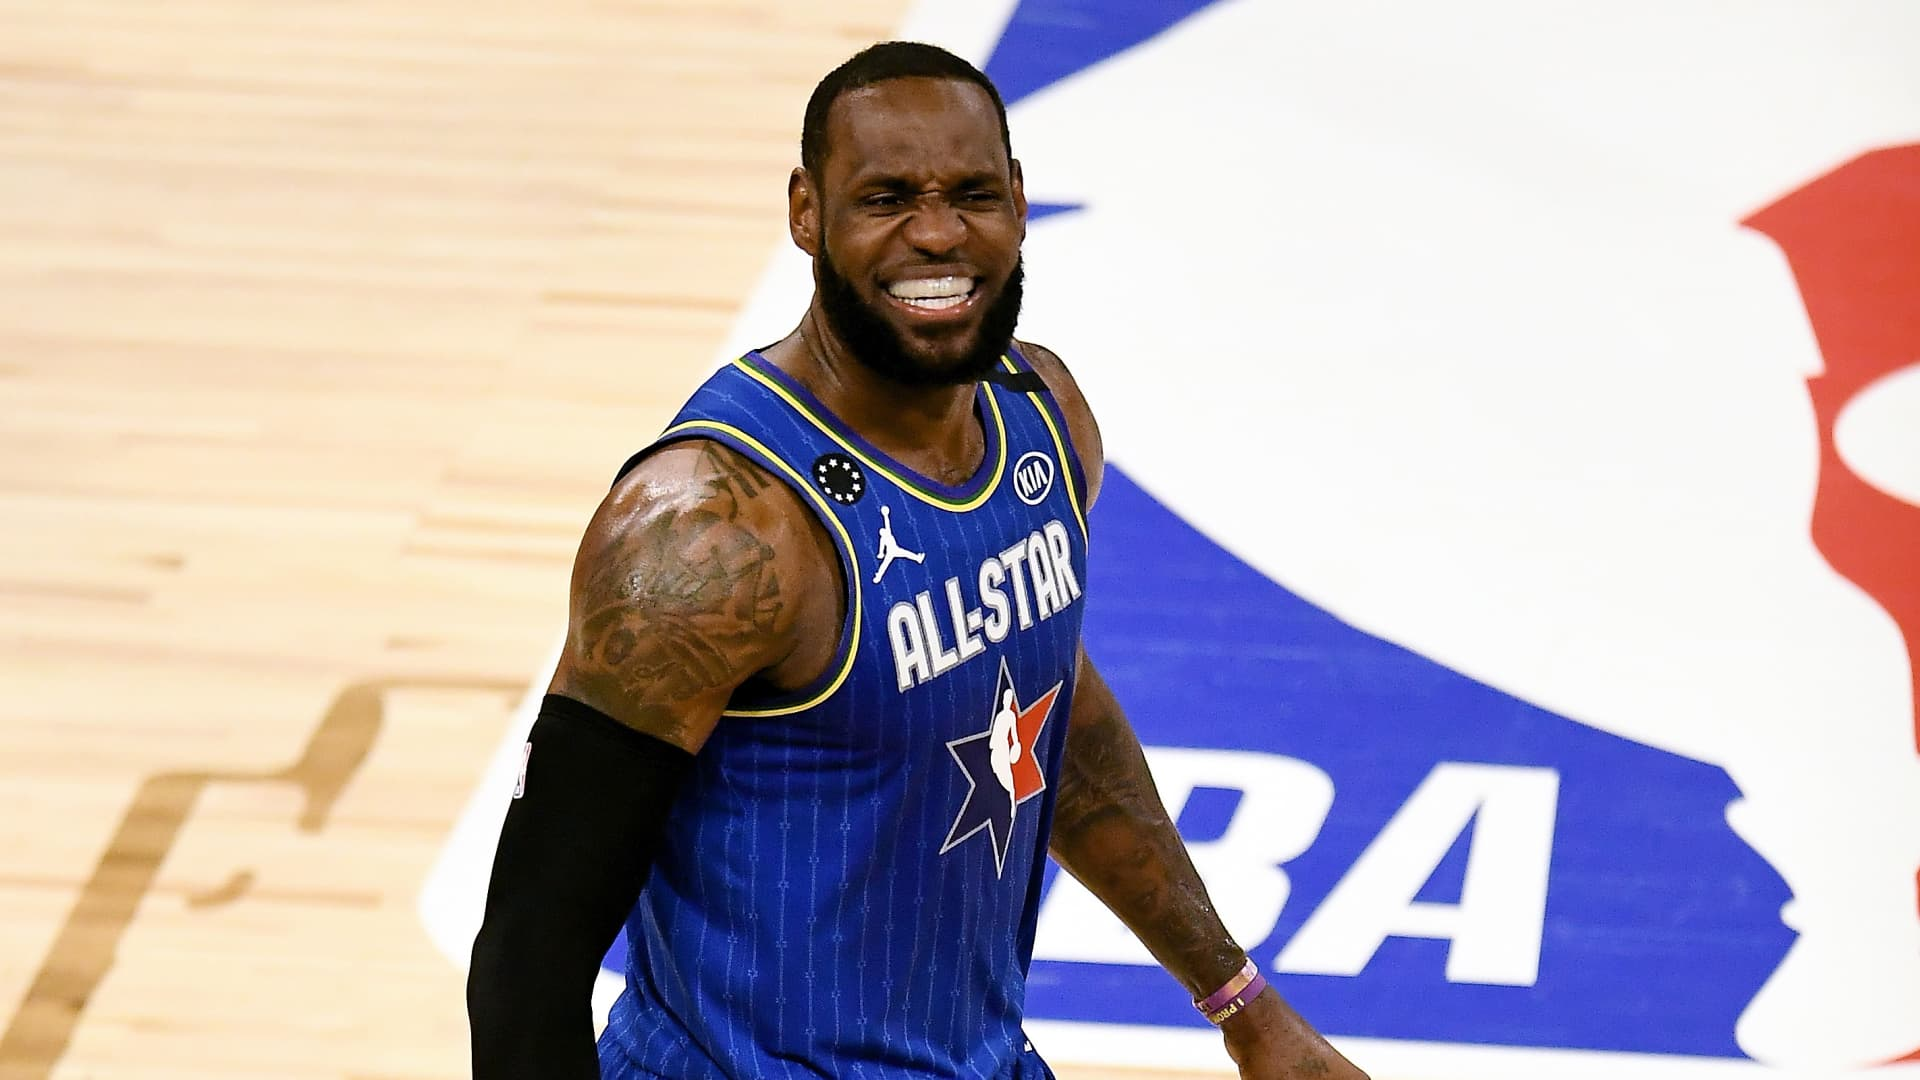 LeBron James #2 of Team LeBron celebrates after beating Team Giannis during the 69th NBA All-Star Game at the United Center on February 16, 2020 in Chicago, Illinois.